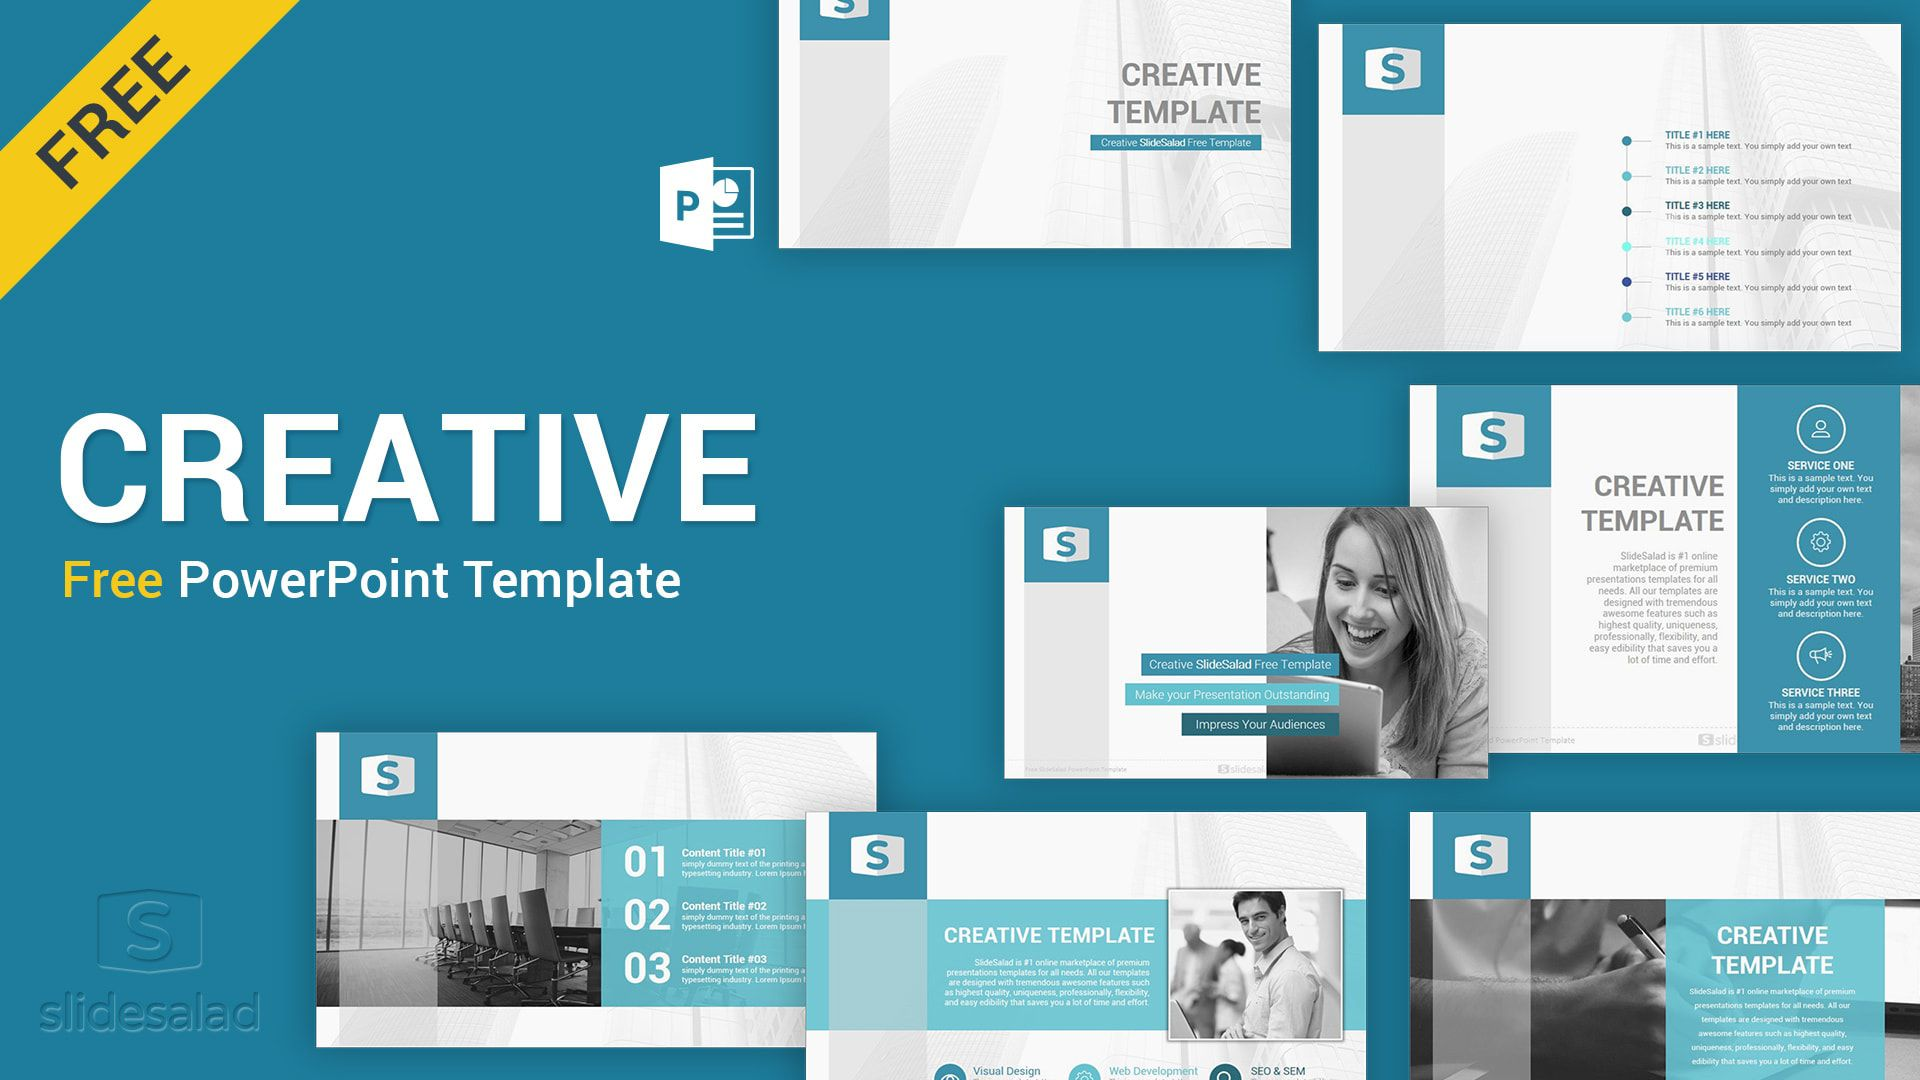 005 Awful Power Point Presentation Template Free Idea  Powerpoint Layout Download 2019 Modern BusinesFull